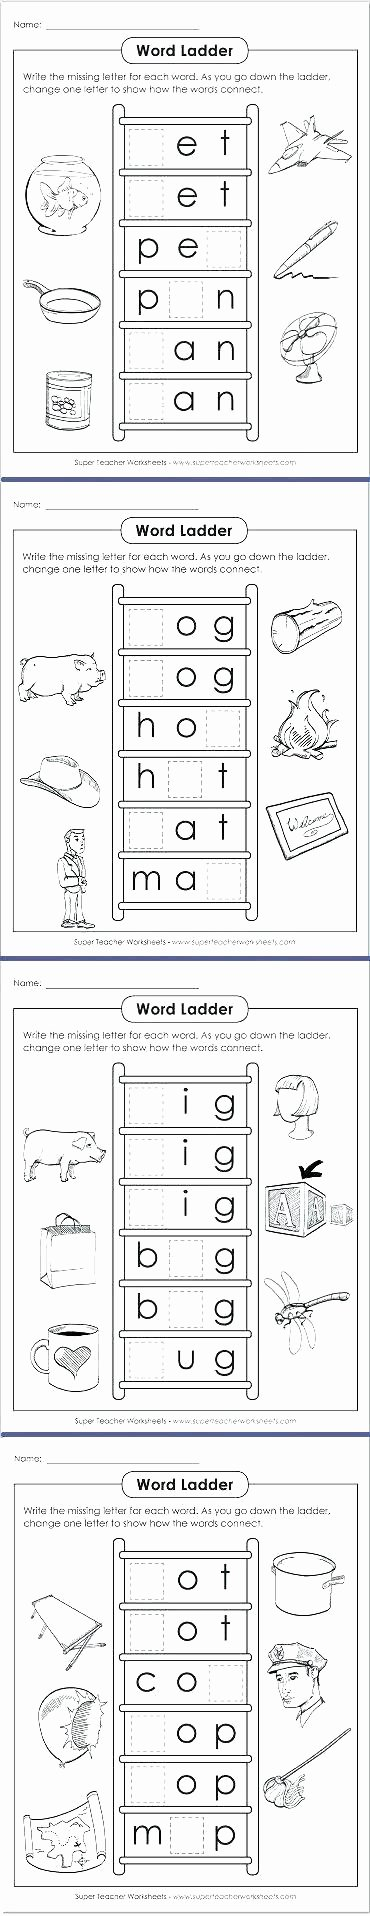 Super Teacher Worksheet Login Super Teacher Worksheets Word Search Summer Fun Mammal Printable